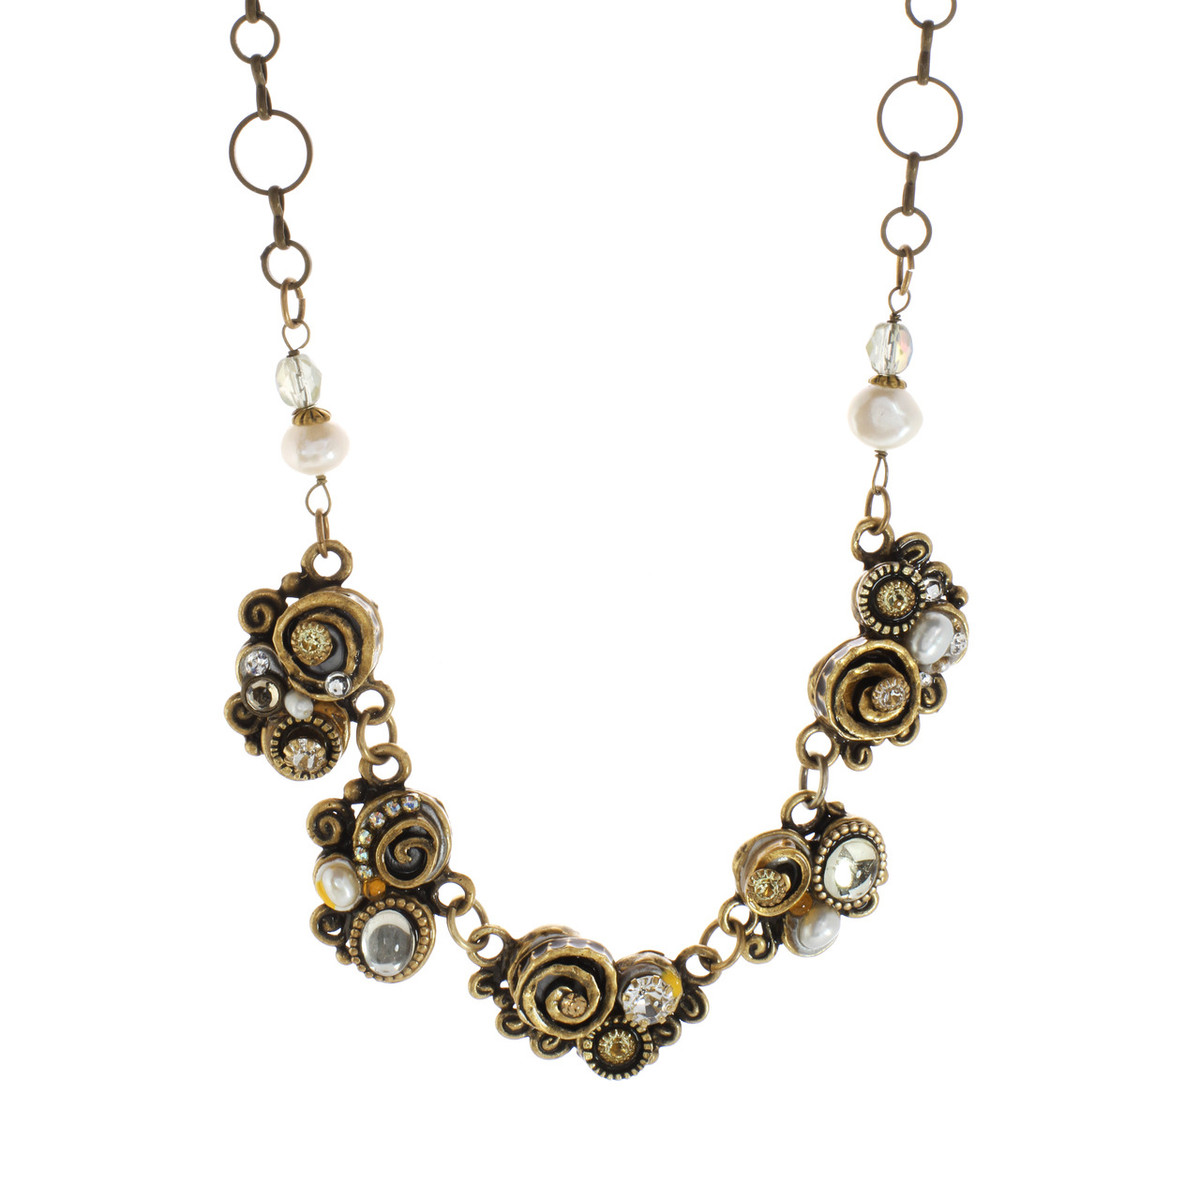 Michal Golan Necklace Five Piece Swirl